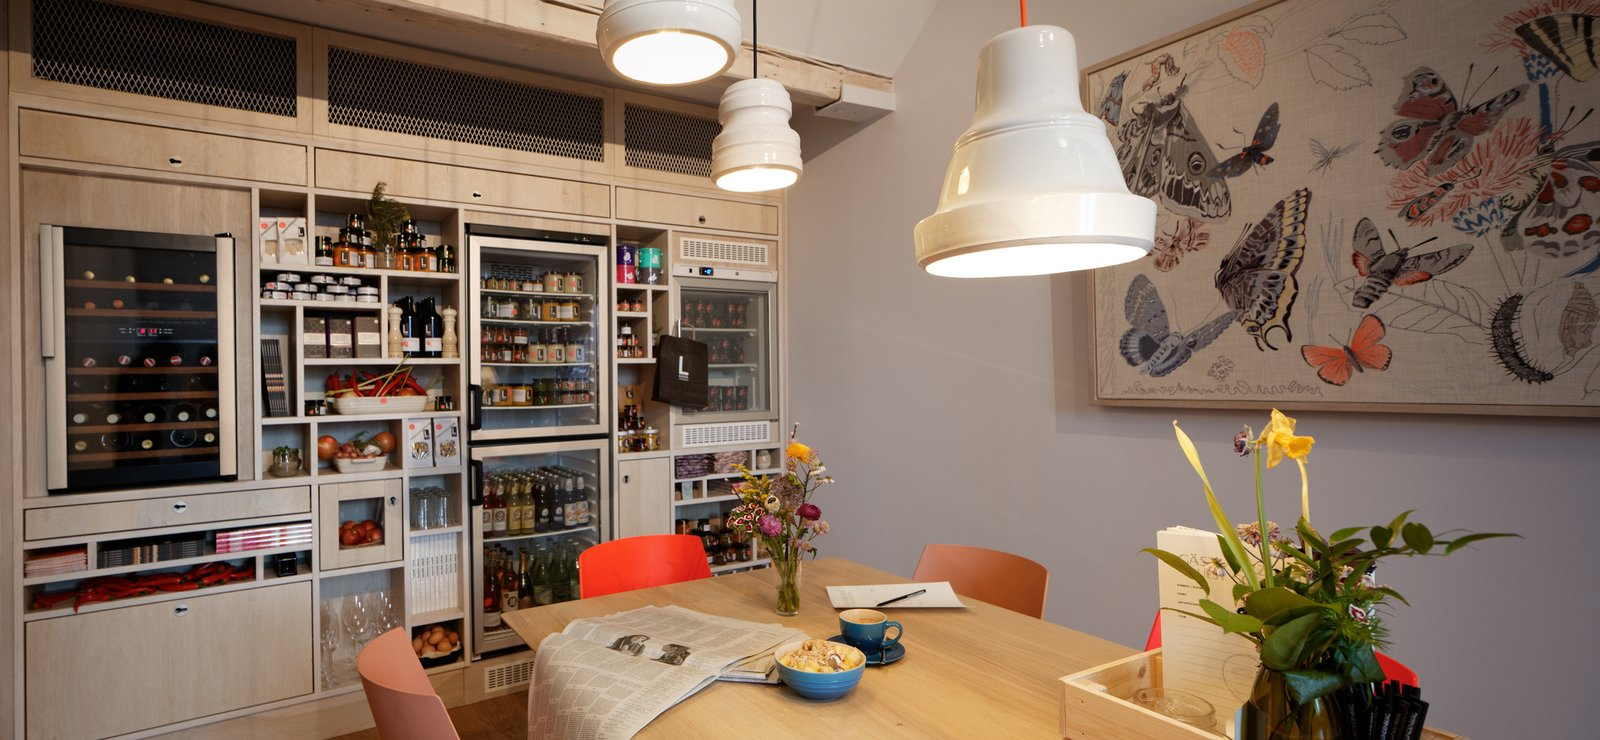 The fifth floor of the hotel features Lekker, a mini grocery store that's open 24/7. Guests can cook here or in their private rooms.  Photo 5 of 8 in Inspired by the Sharing Economy, This Frankfurt Hotel Feels Just Like Home